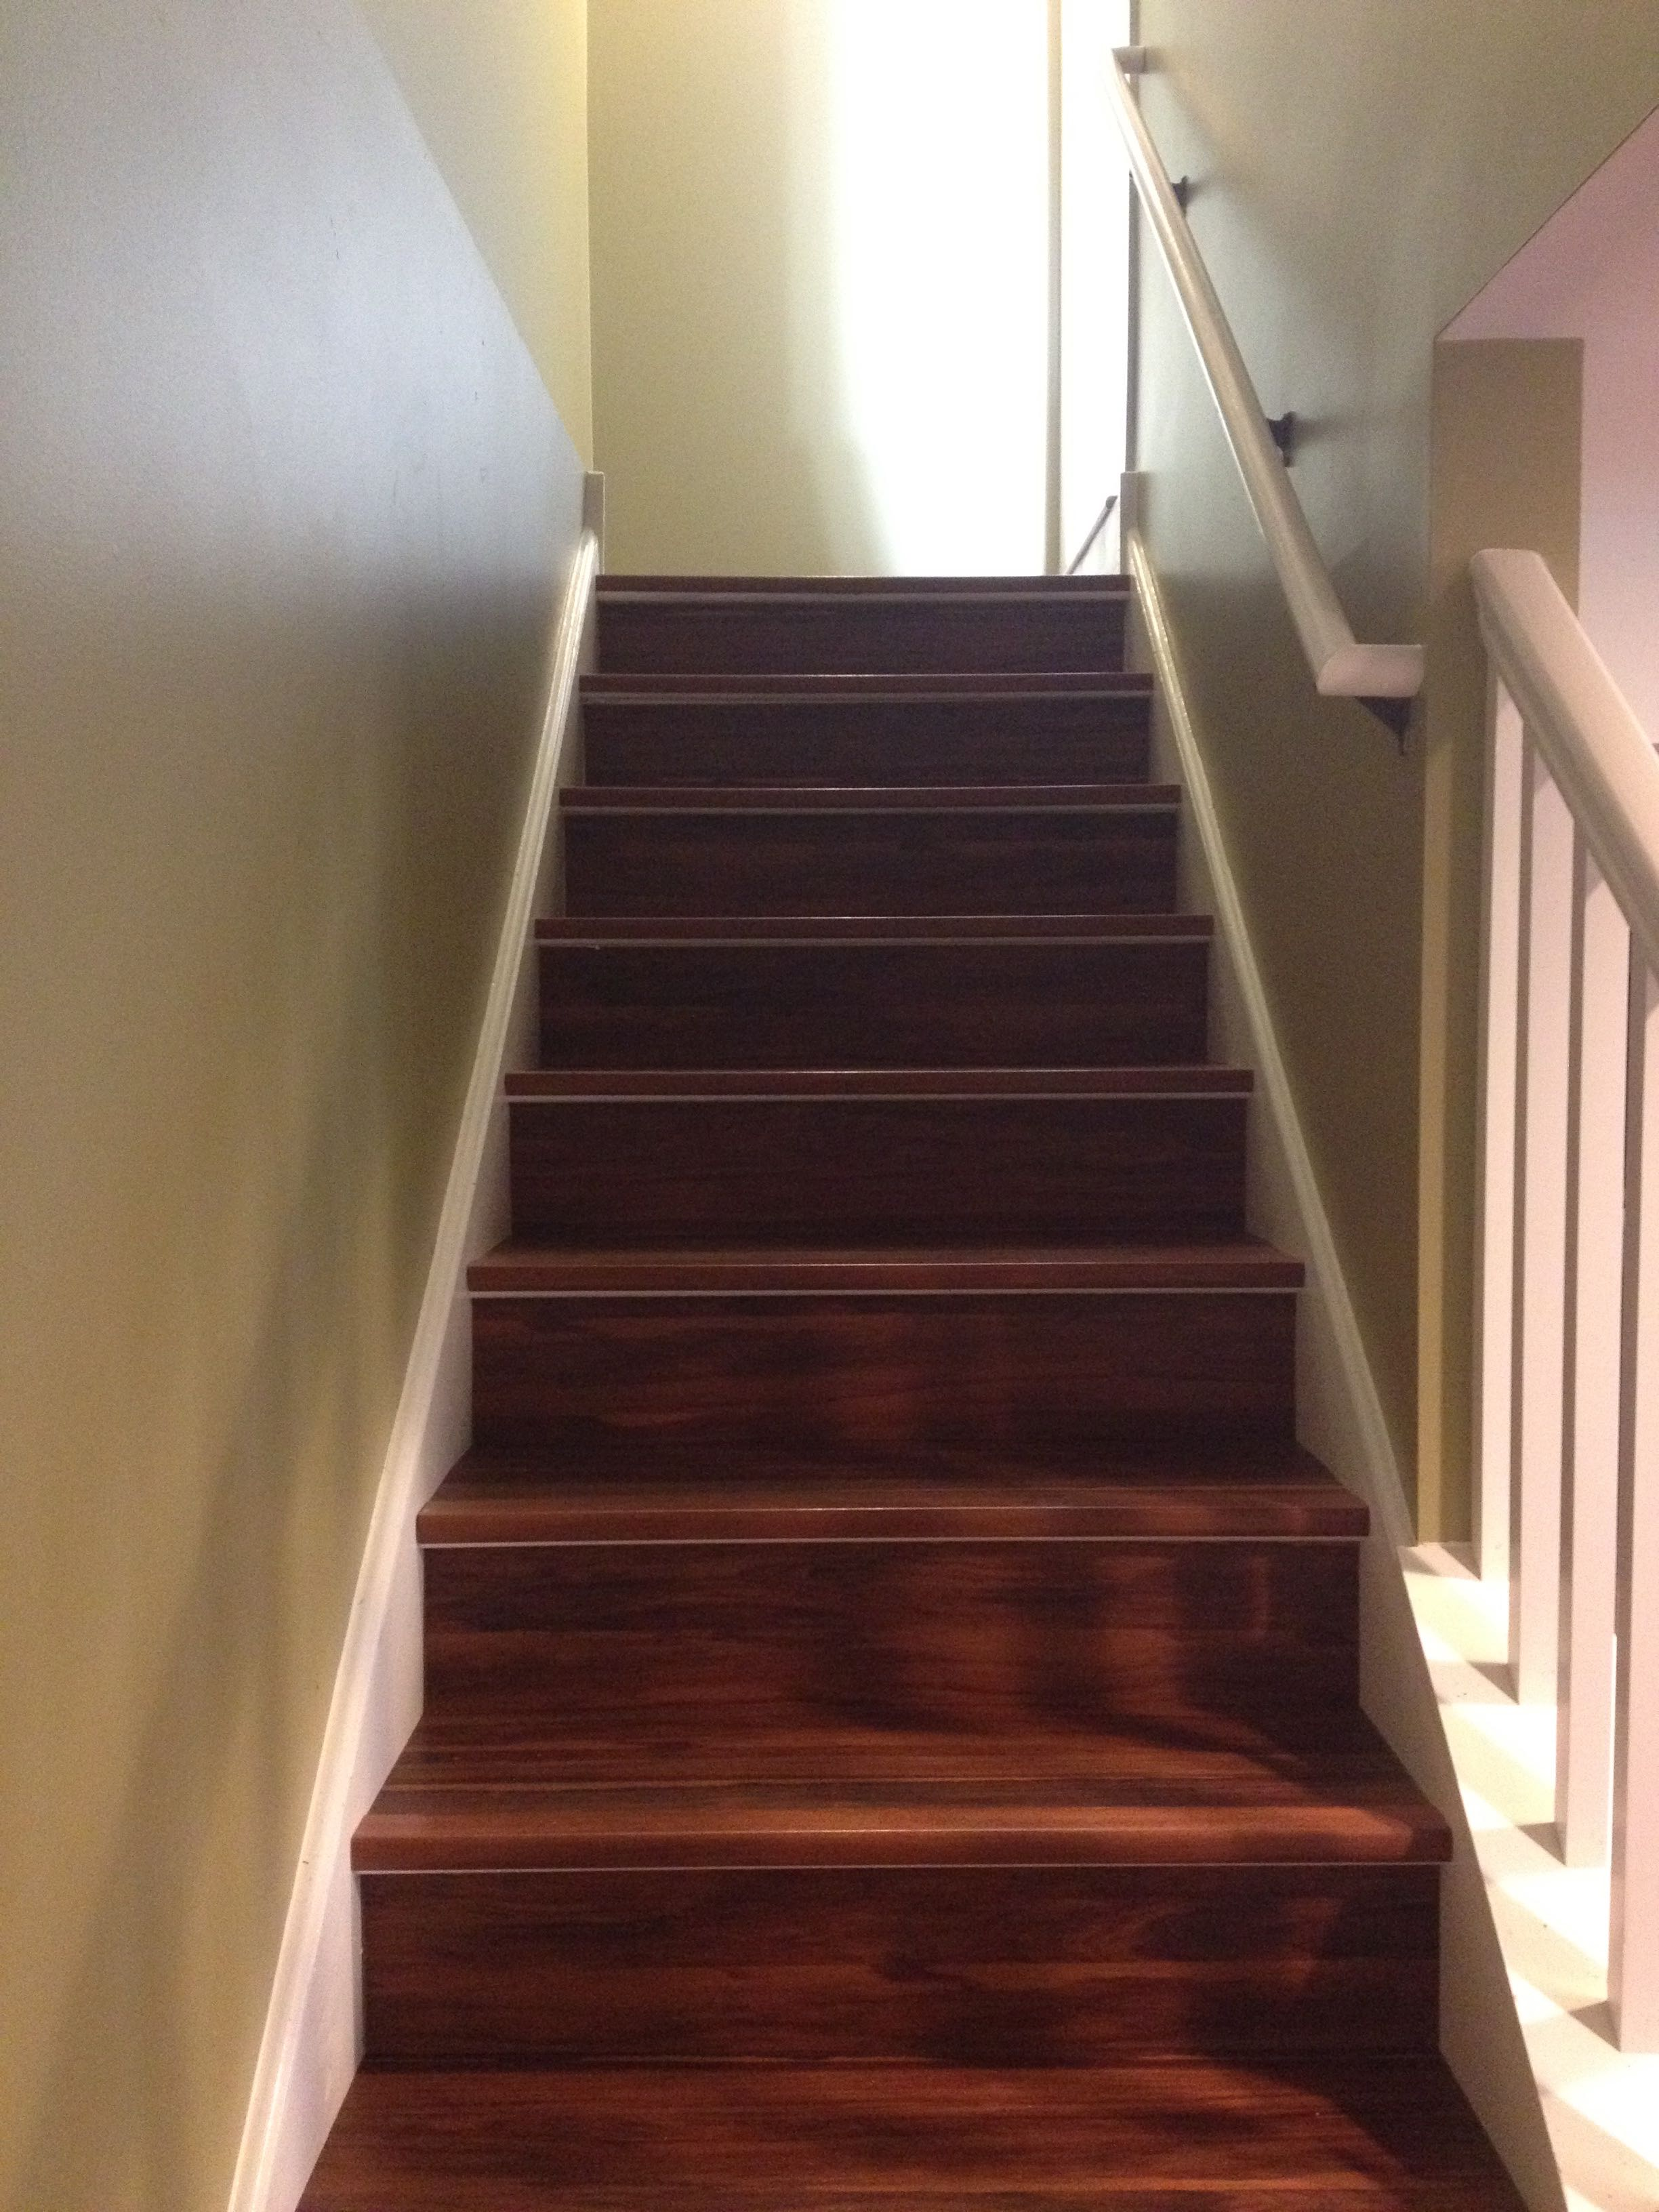 6 Ideas For Finishing Your Basement Stairs September 2019